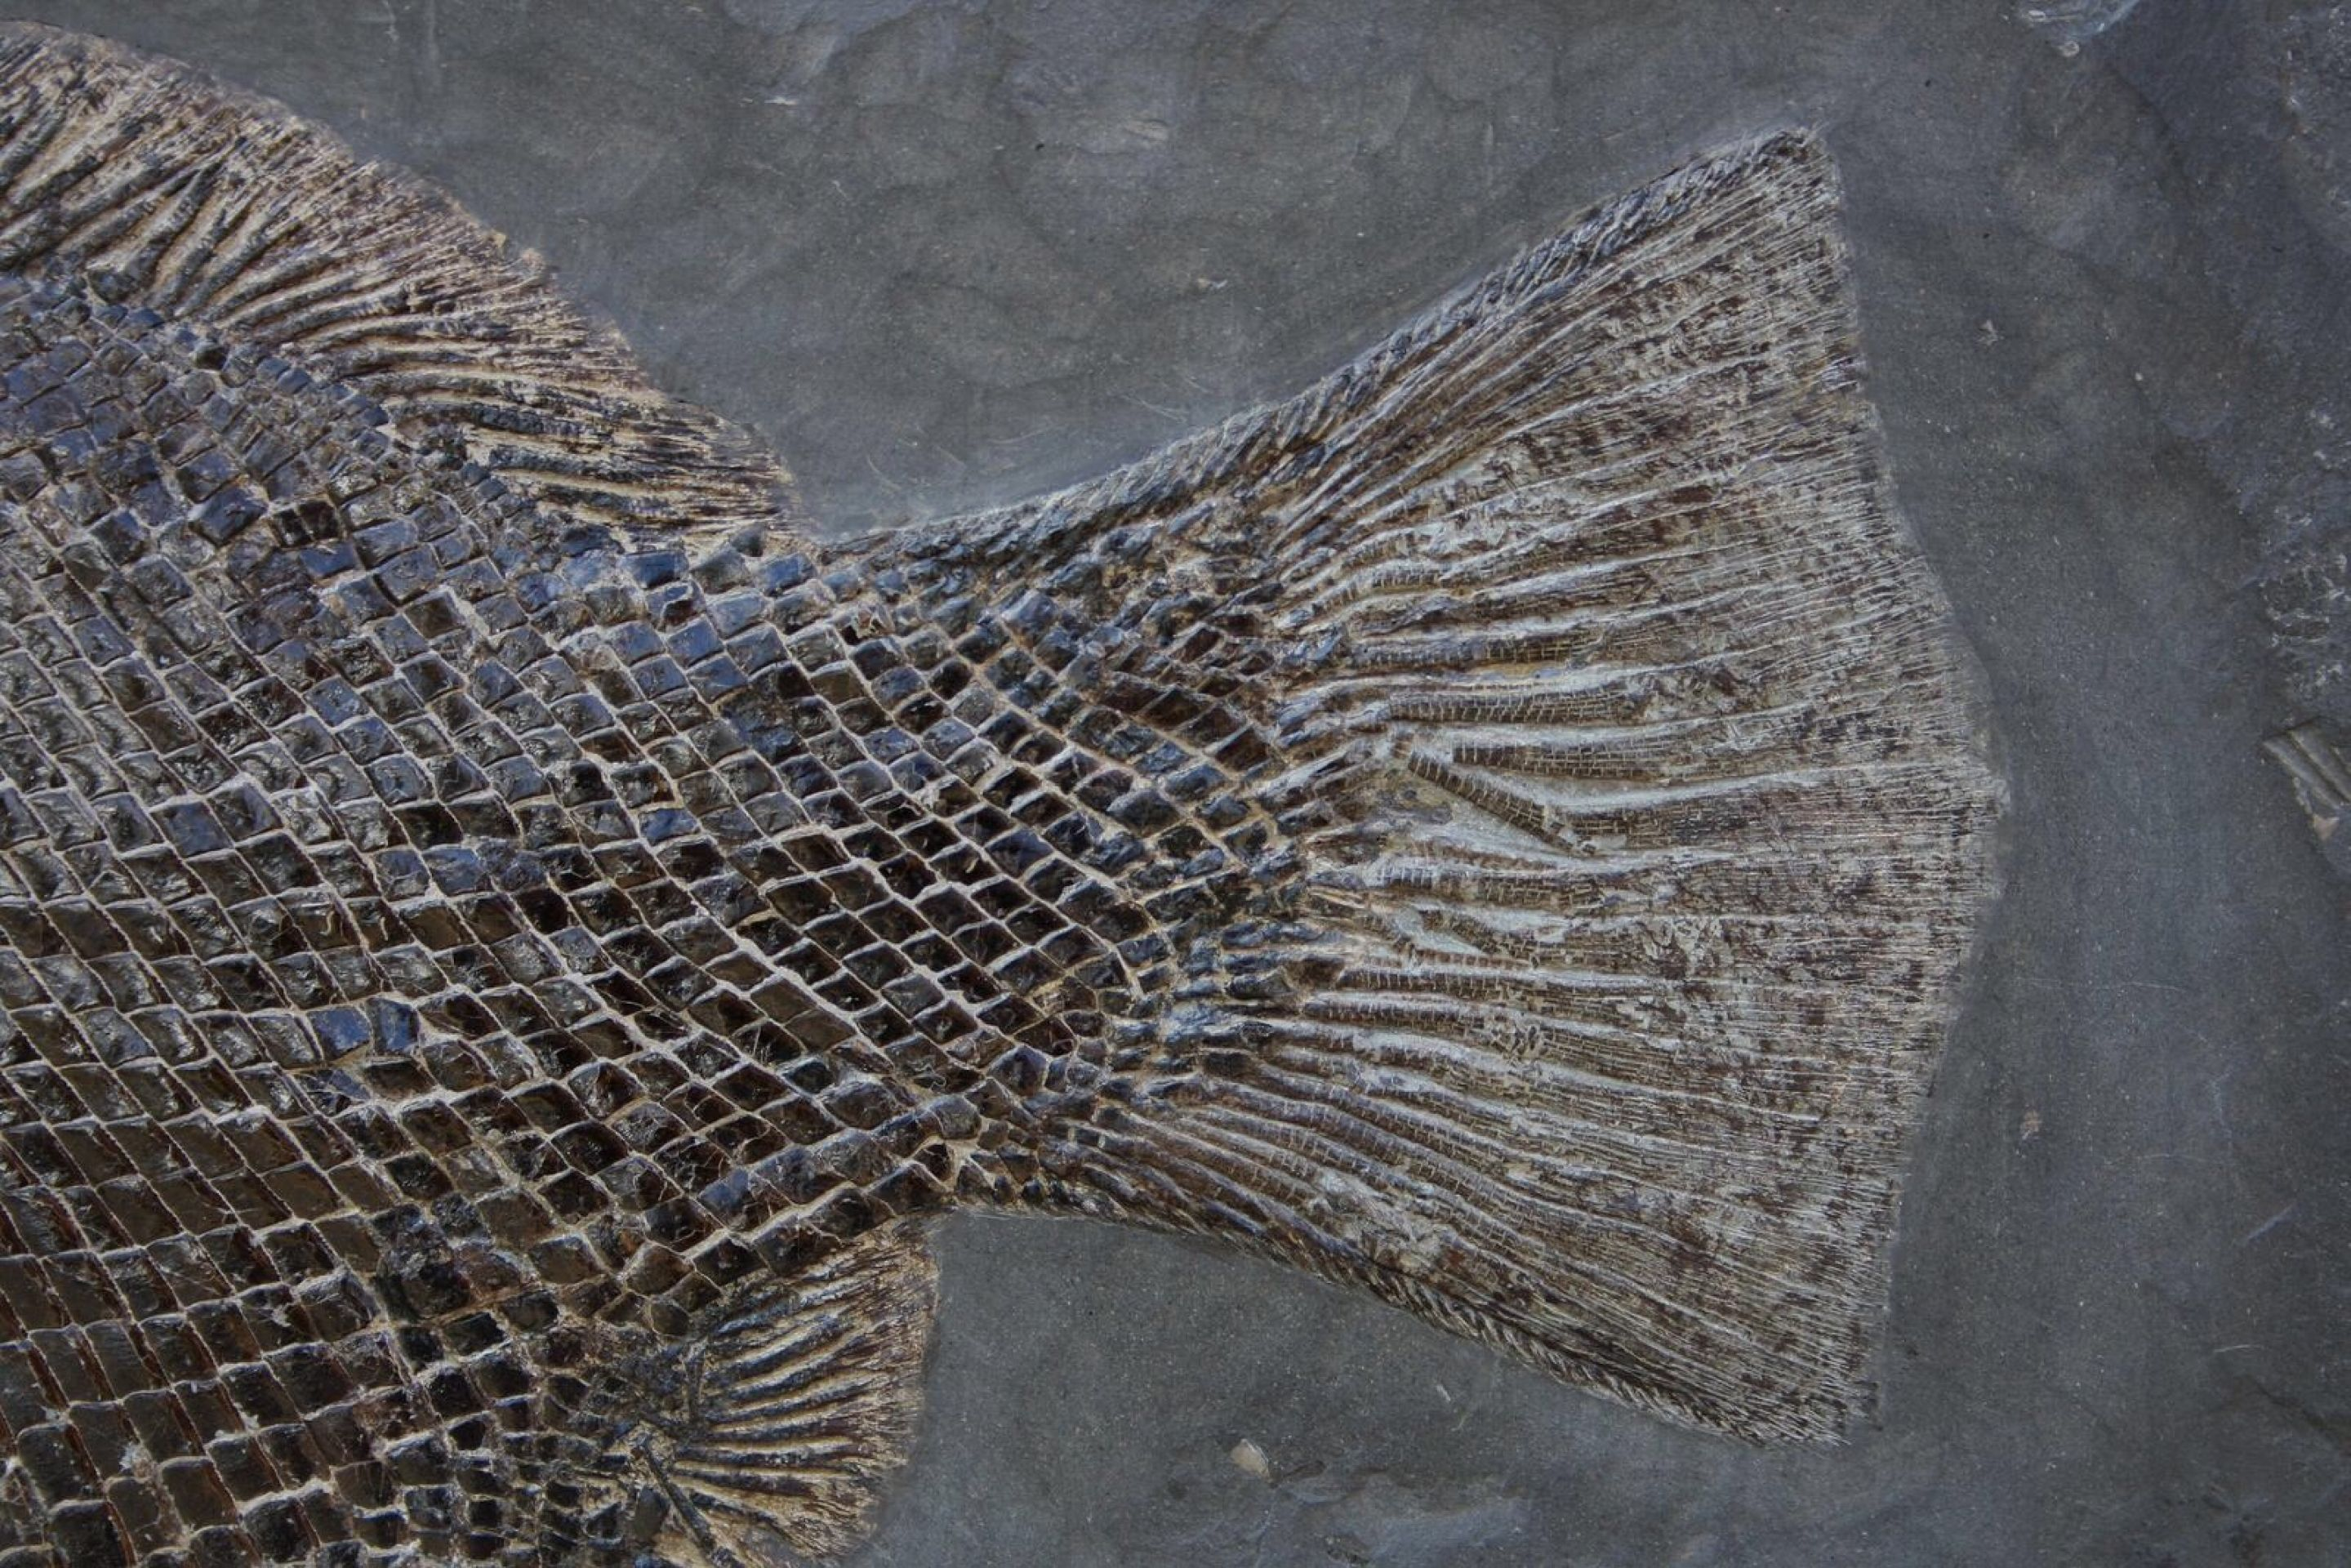 RARE DAPEDIUM FOSSIL FISH IN PYRITIZED AMMONITE SLAB - HOLZMADEN - 18.9 INCHES